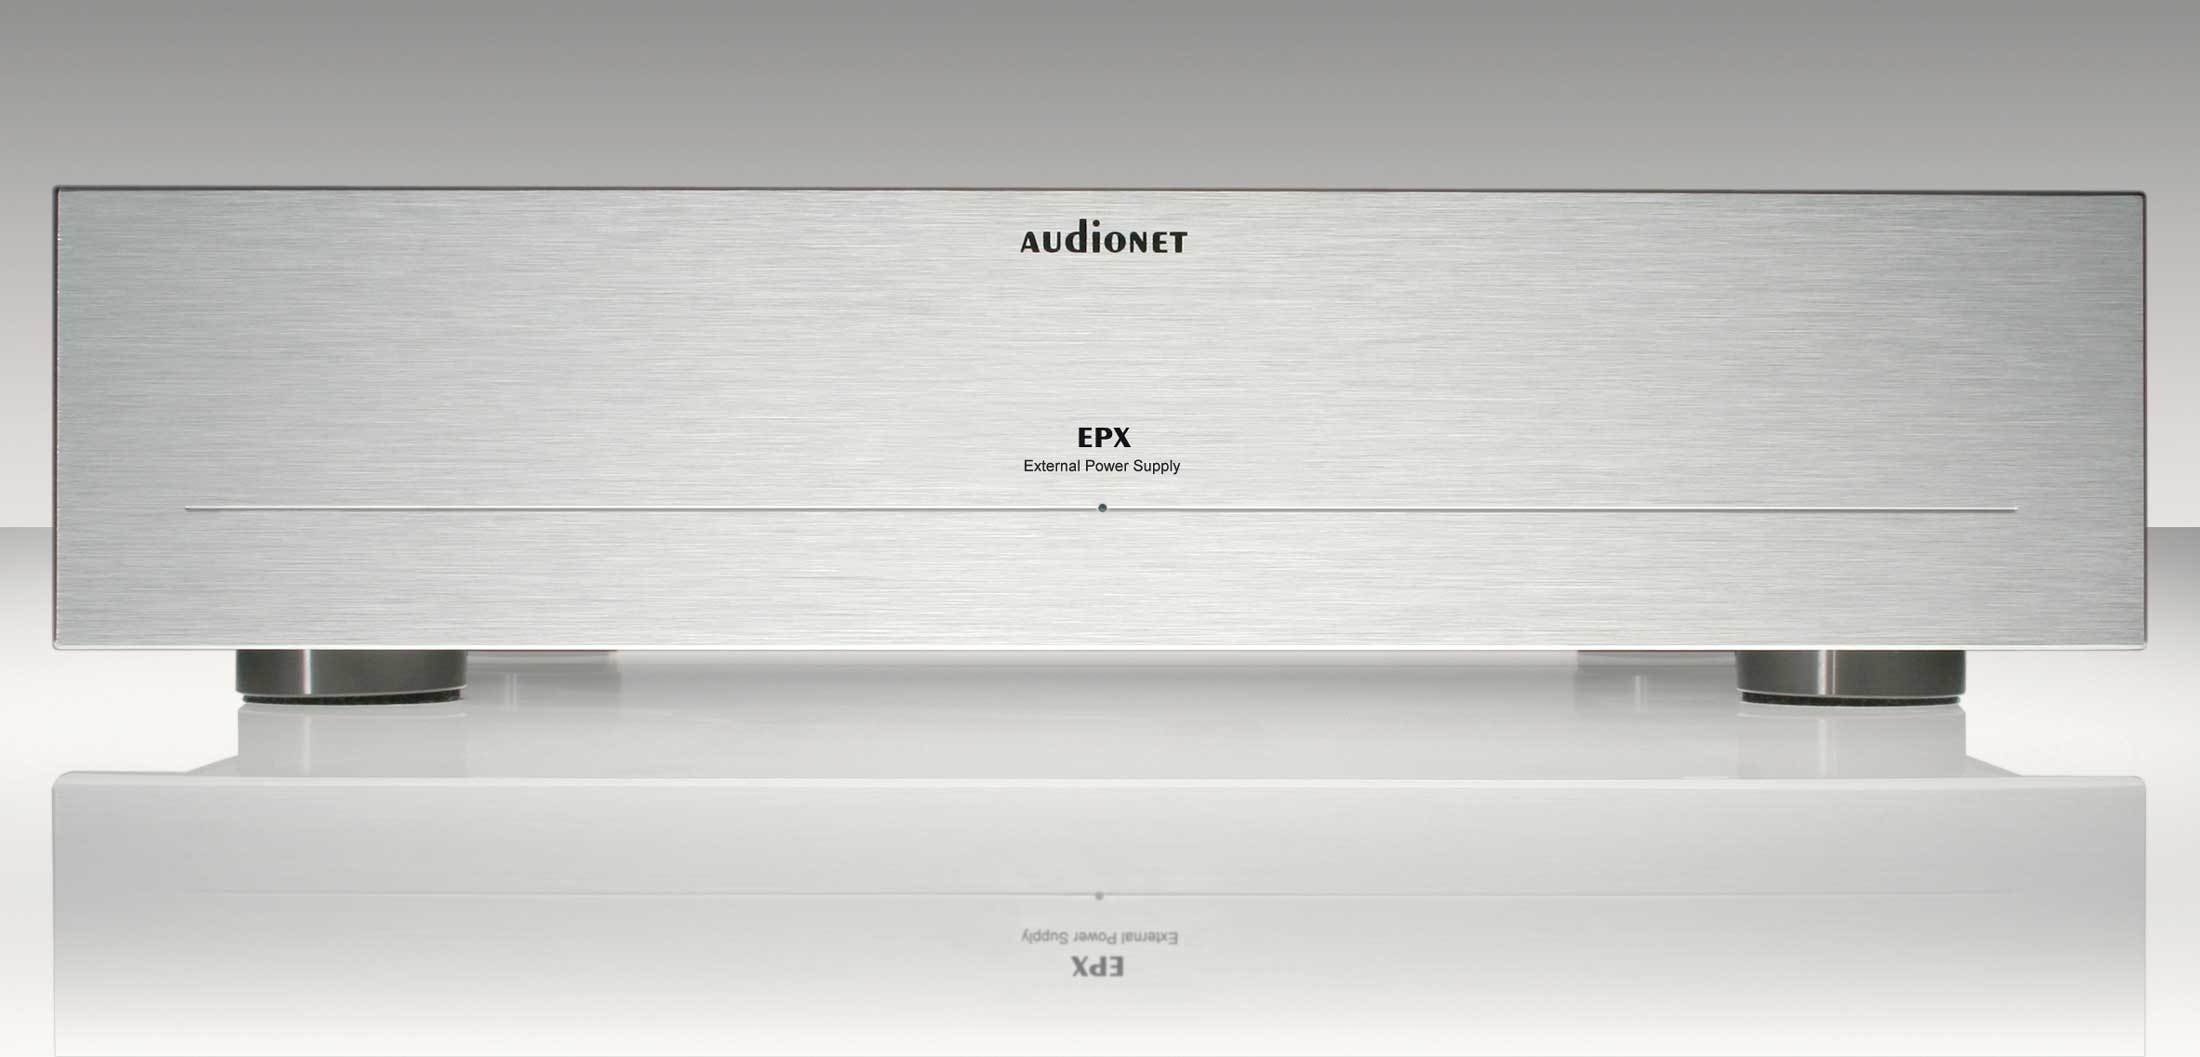 AudioNet EPX 00255